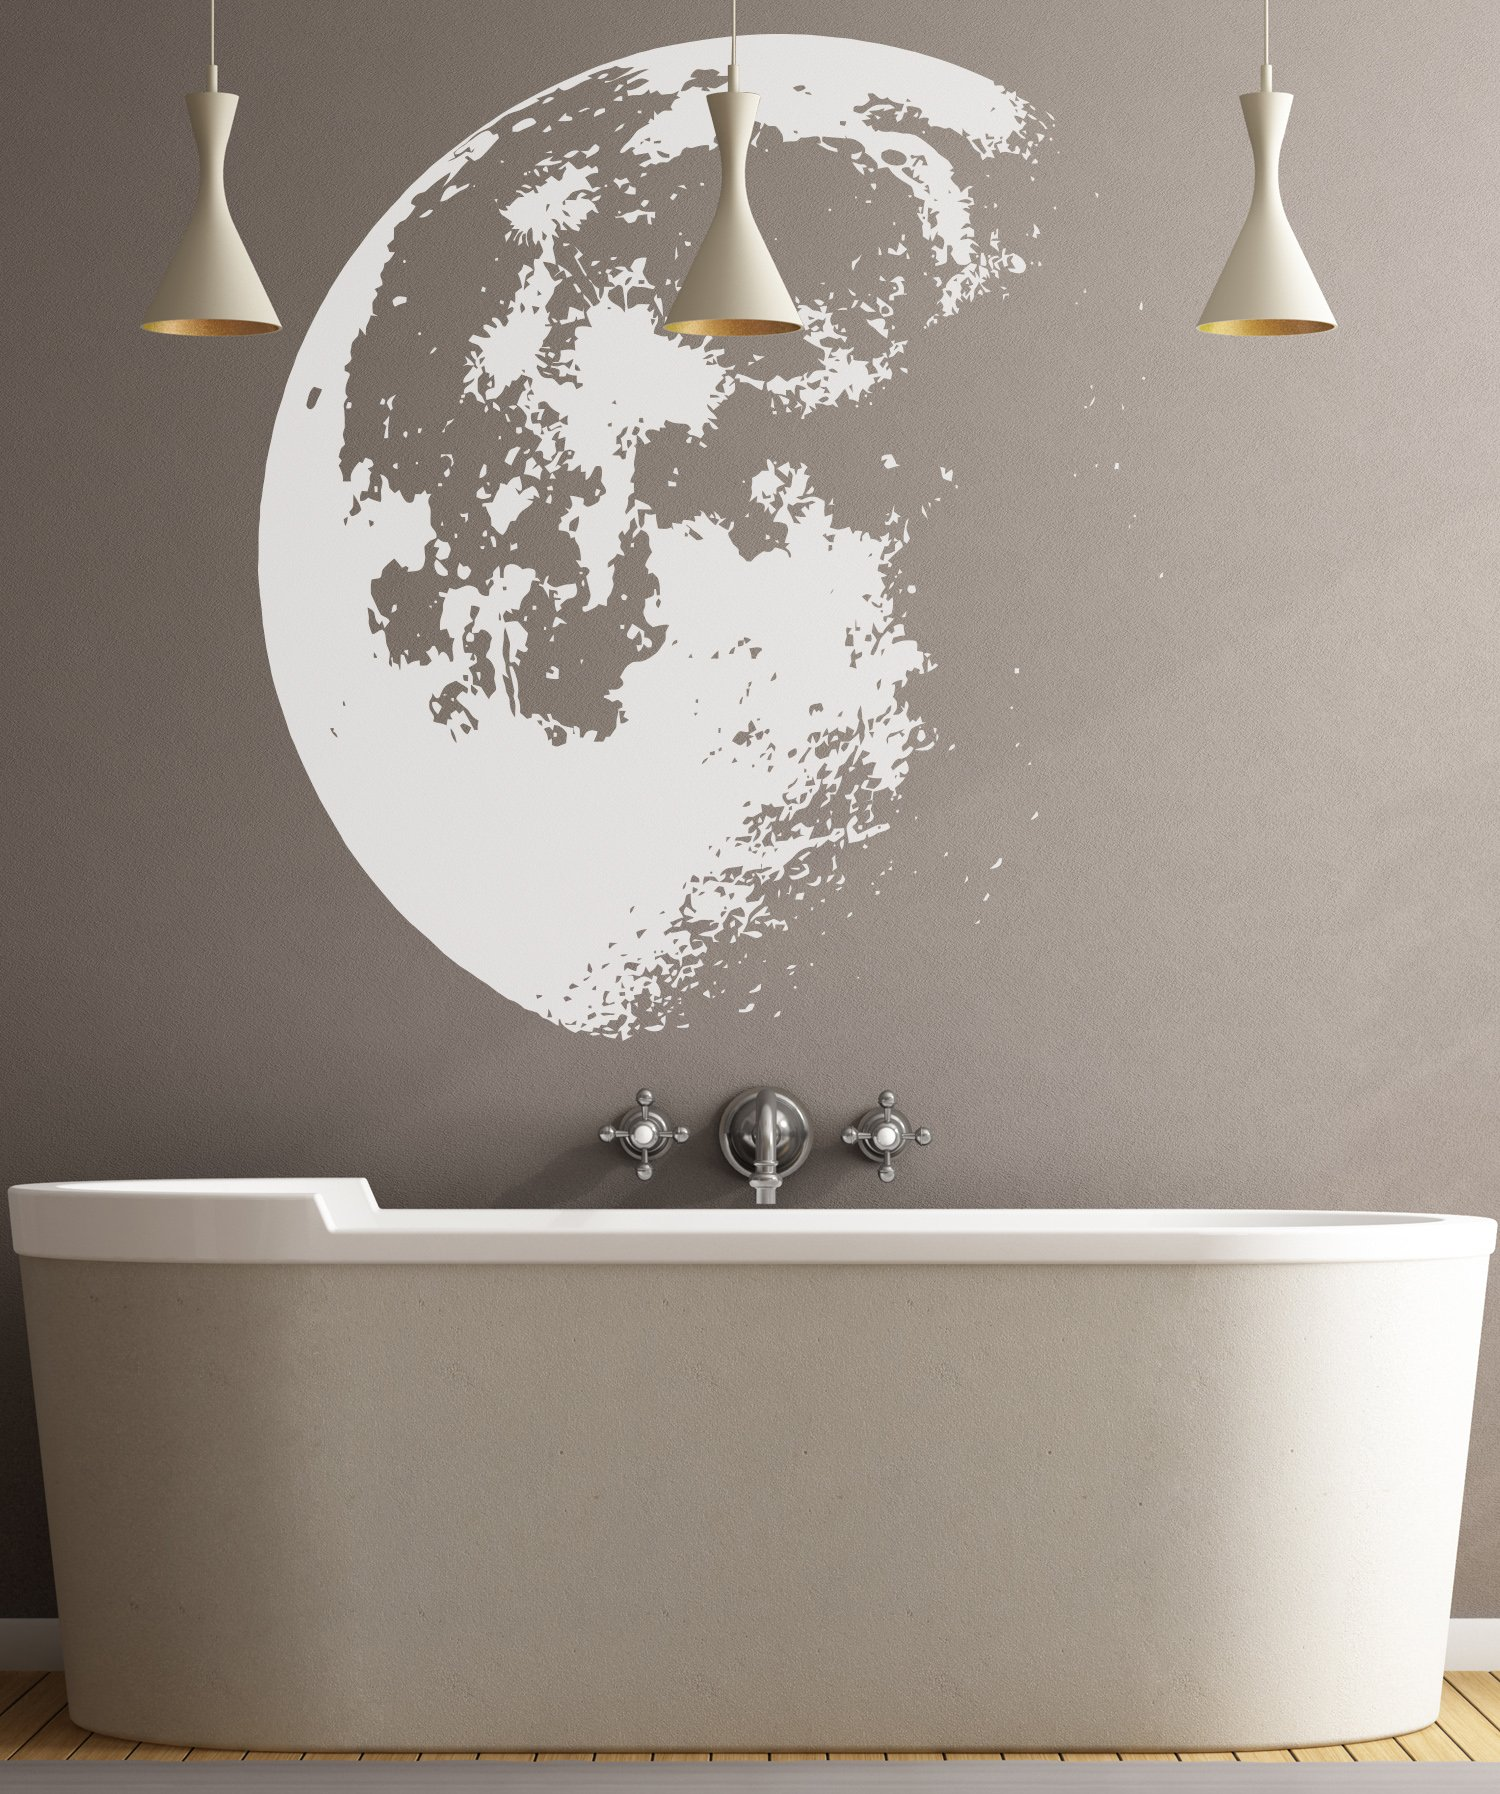 Large Crescent Moon Wall Decal Sticker by Stickerbrand - White color, Large 53in x 48in. #523A Easy to Apply & Removable. by Stickerbrand (Image #1)